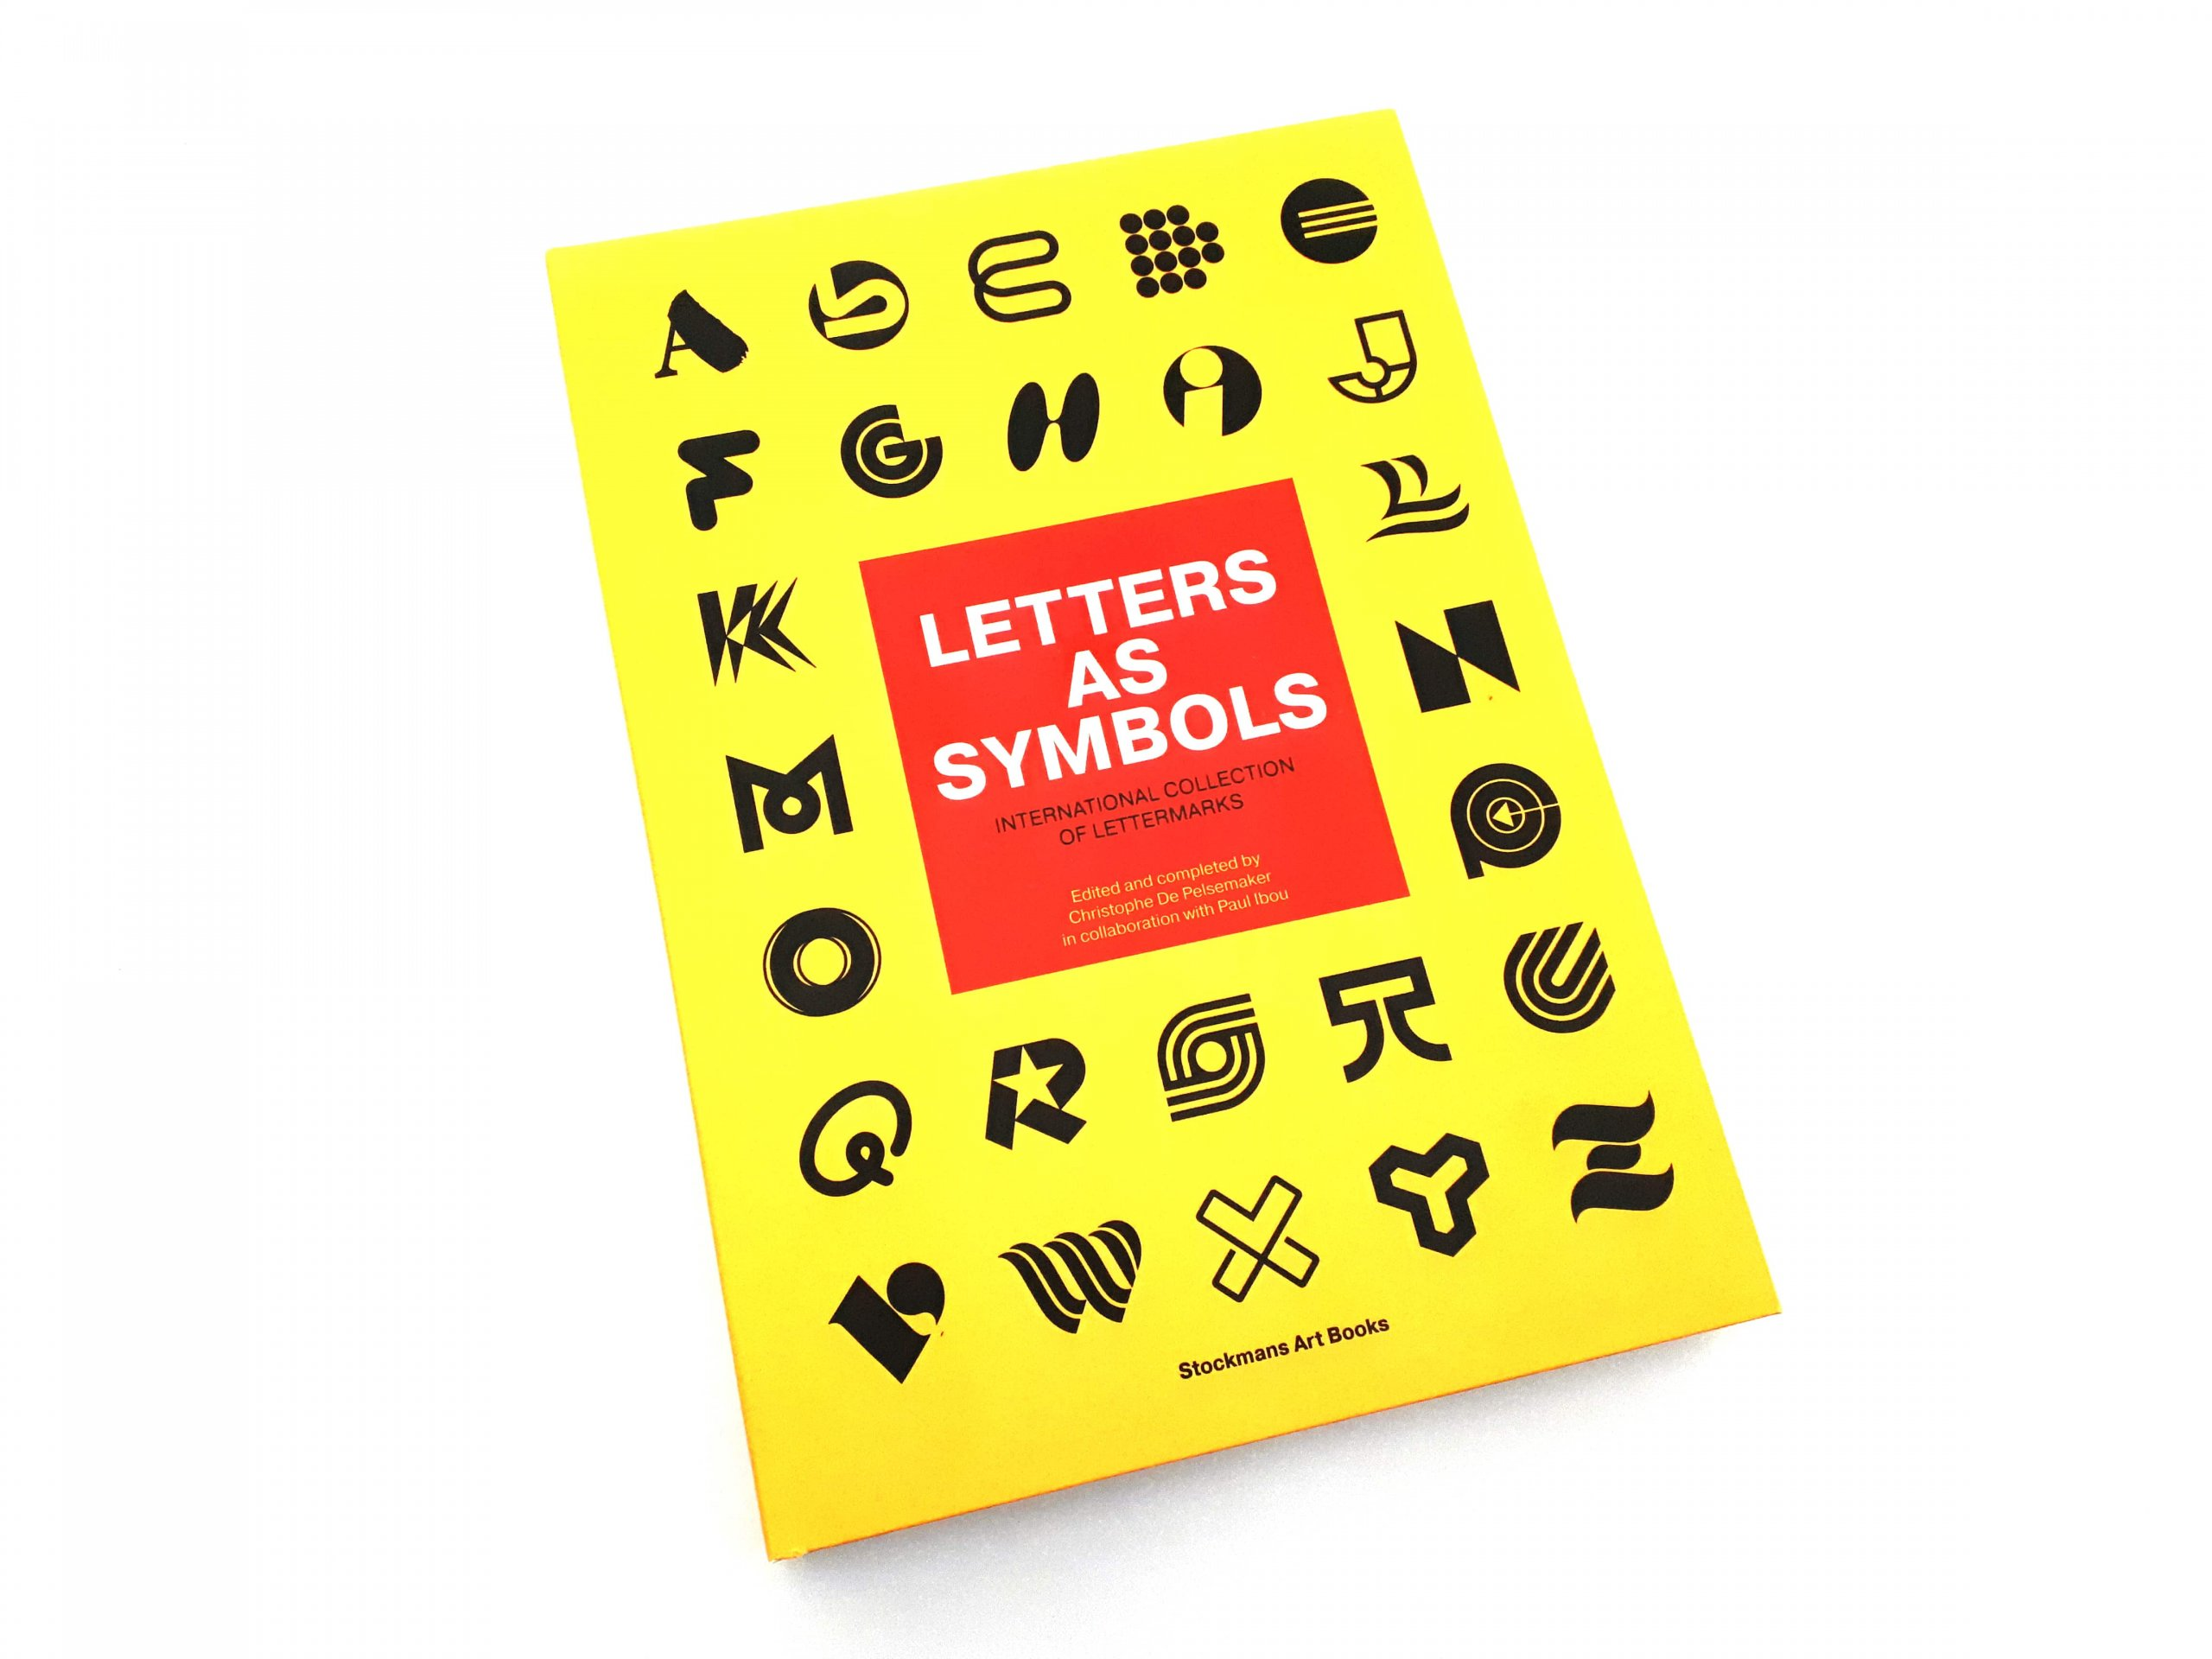 Letters as Symbols by Paul Ibou & Christophe de Pelsemaker